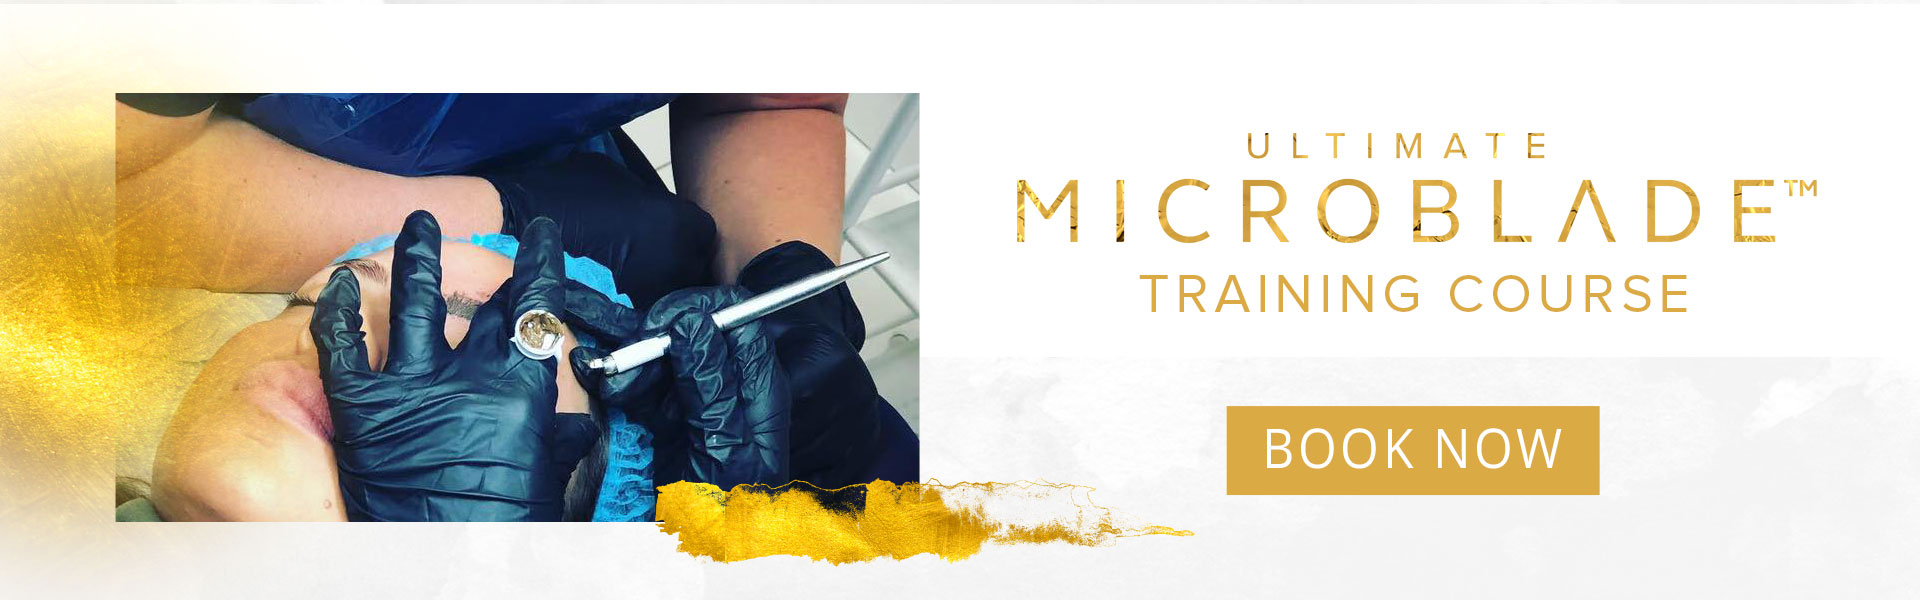 Ultimate Microblading Course